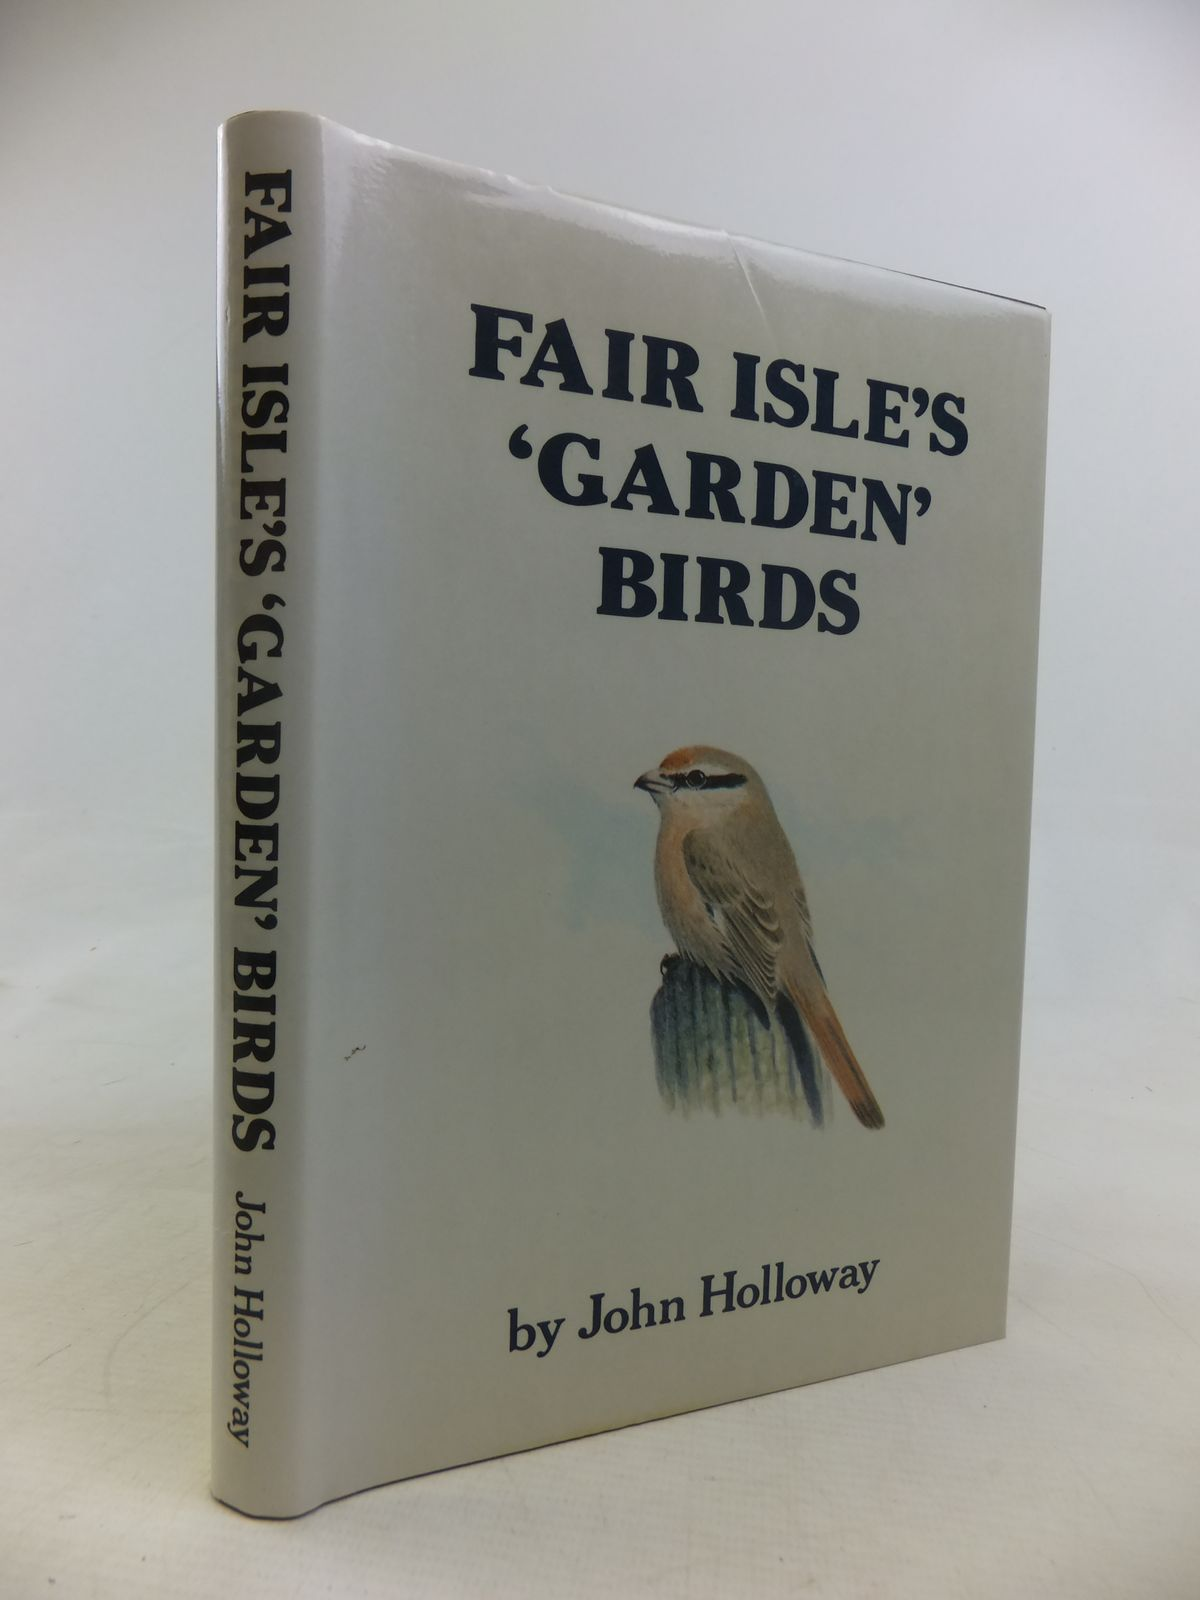 Photo of FAIR ISLE'S GARDEN BIRDS written by Holloway, John illustrated by Holloway, John published by The Shetland Times (STOCK CODE: 1810991)  for sale by Stella & Rose's Books